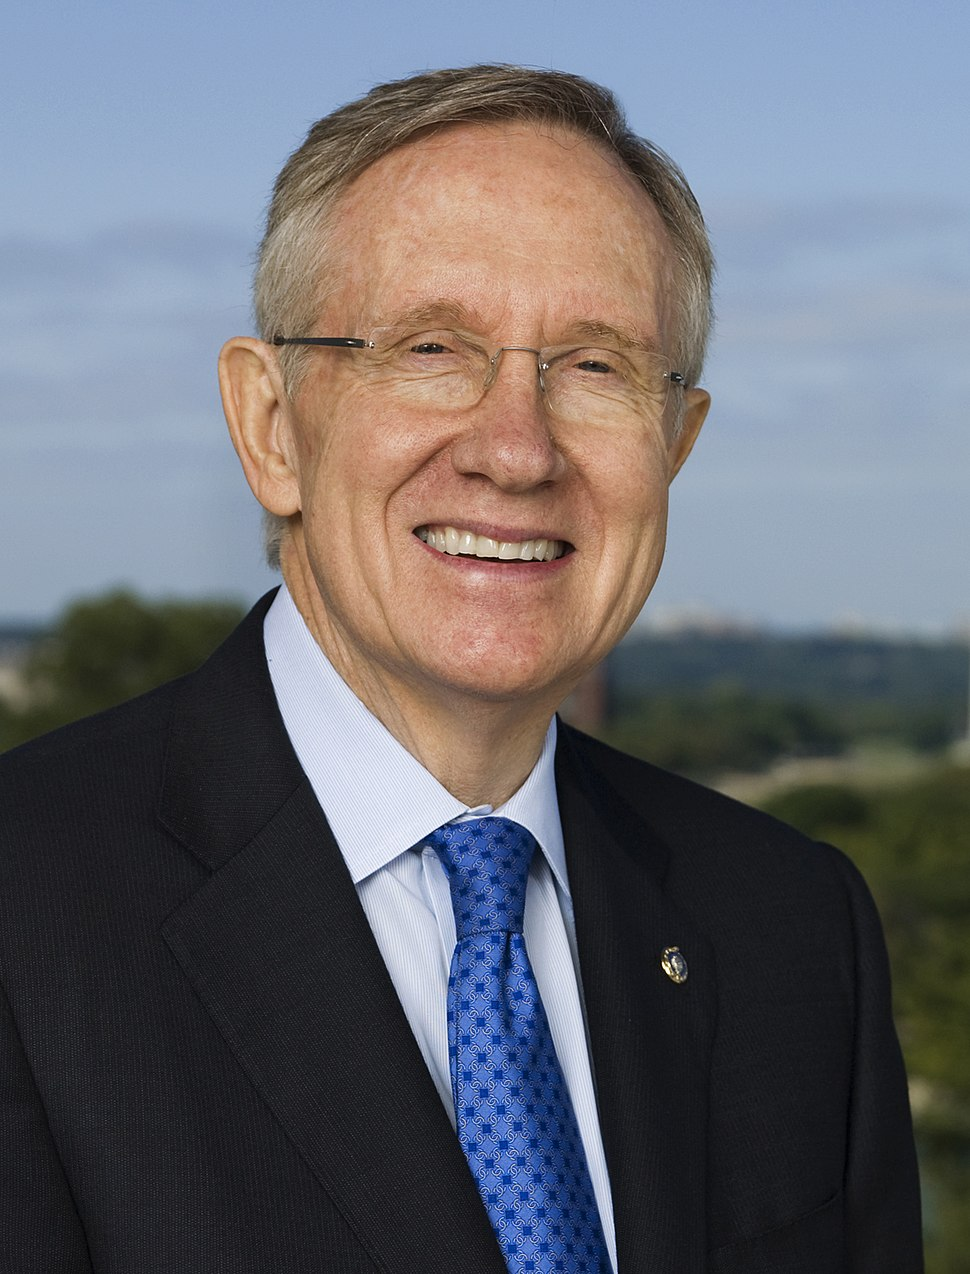 Harry Reid official portrait 2009 crop